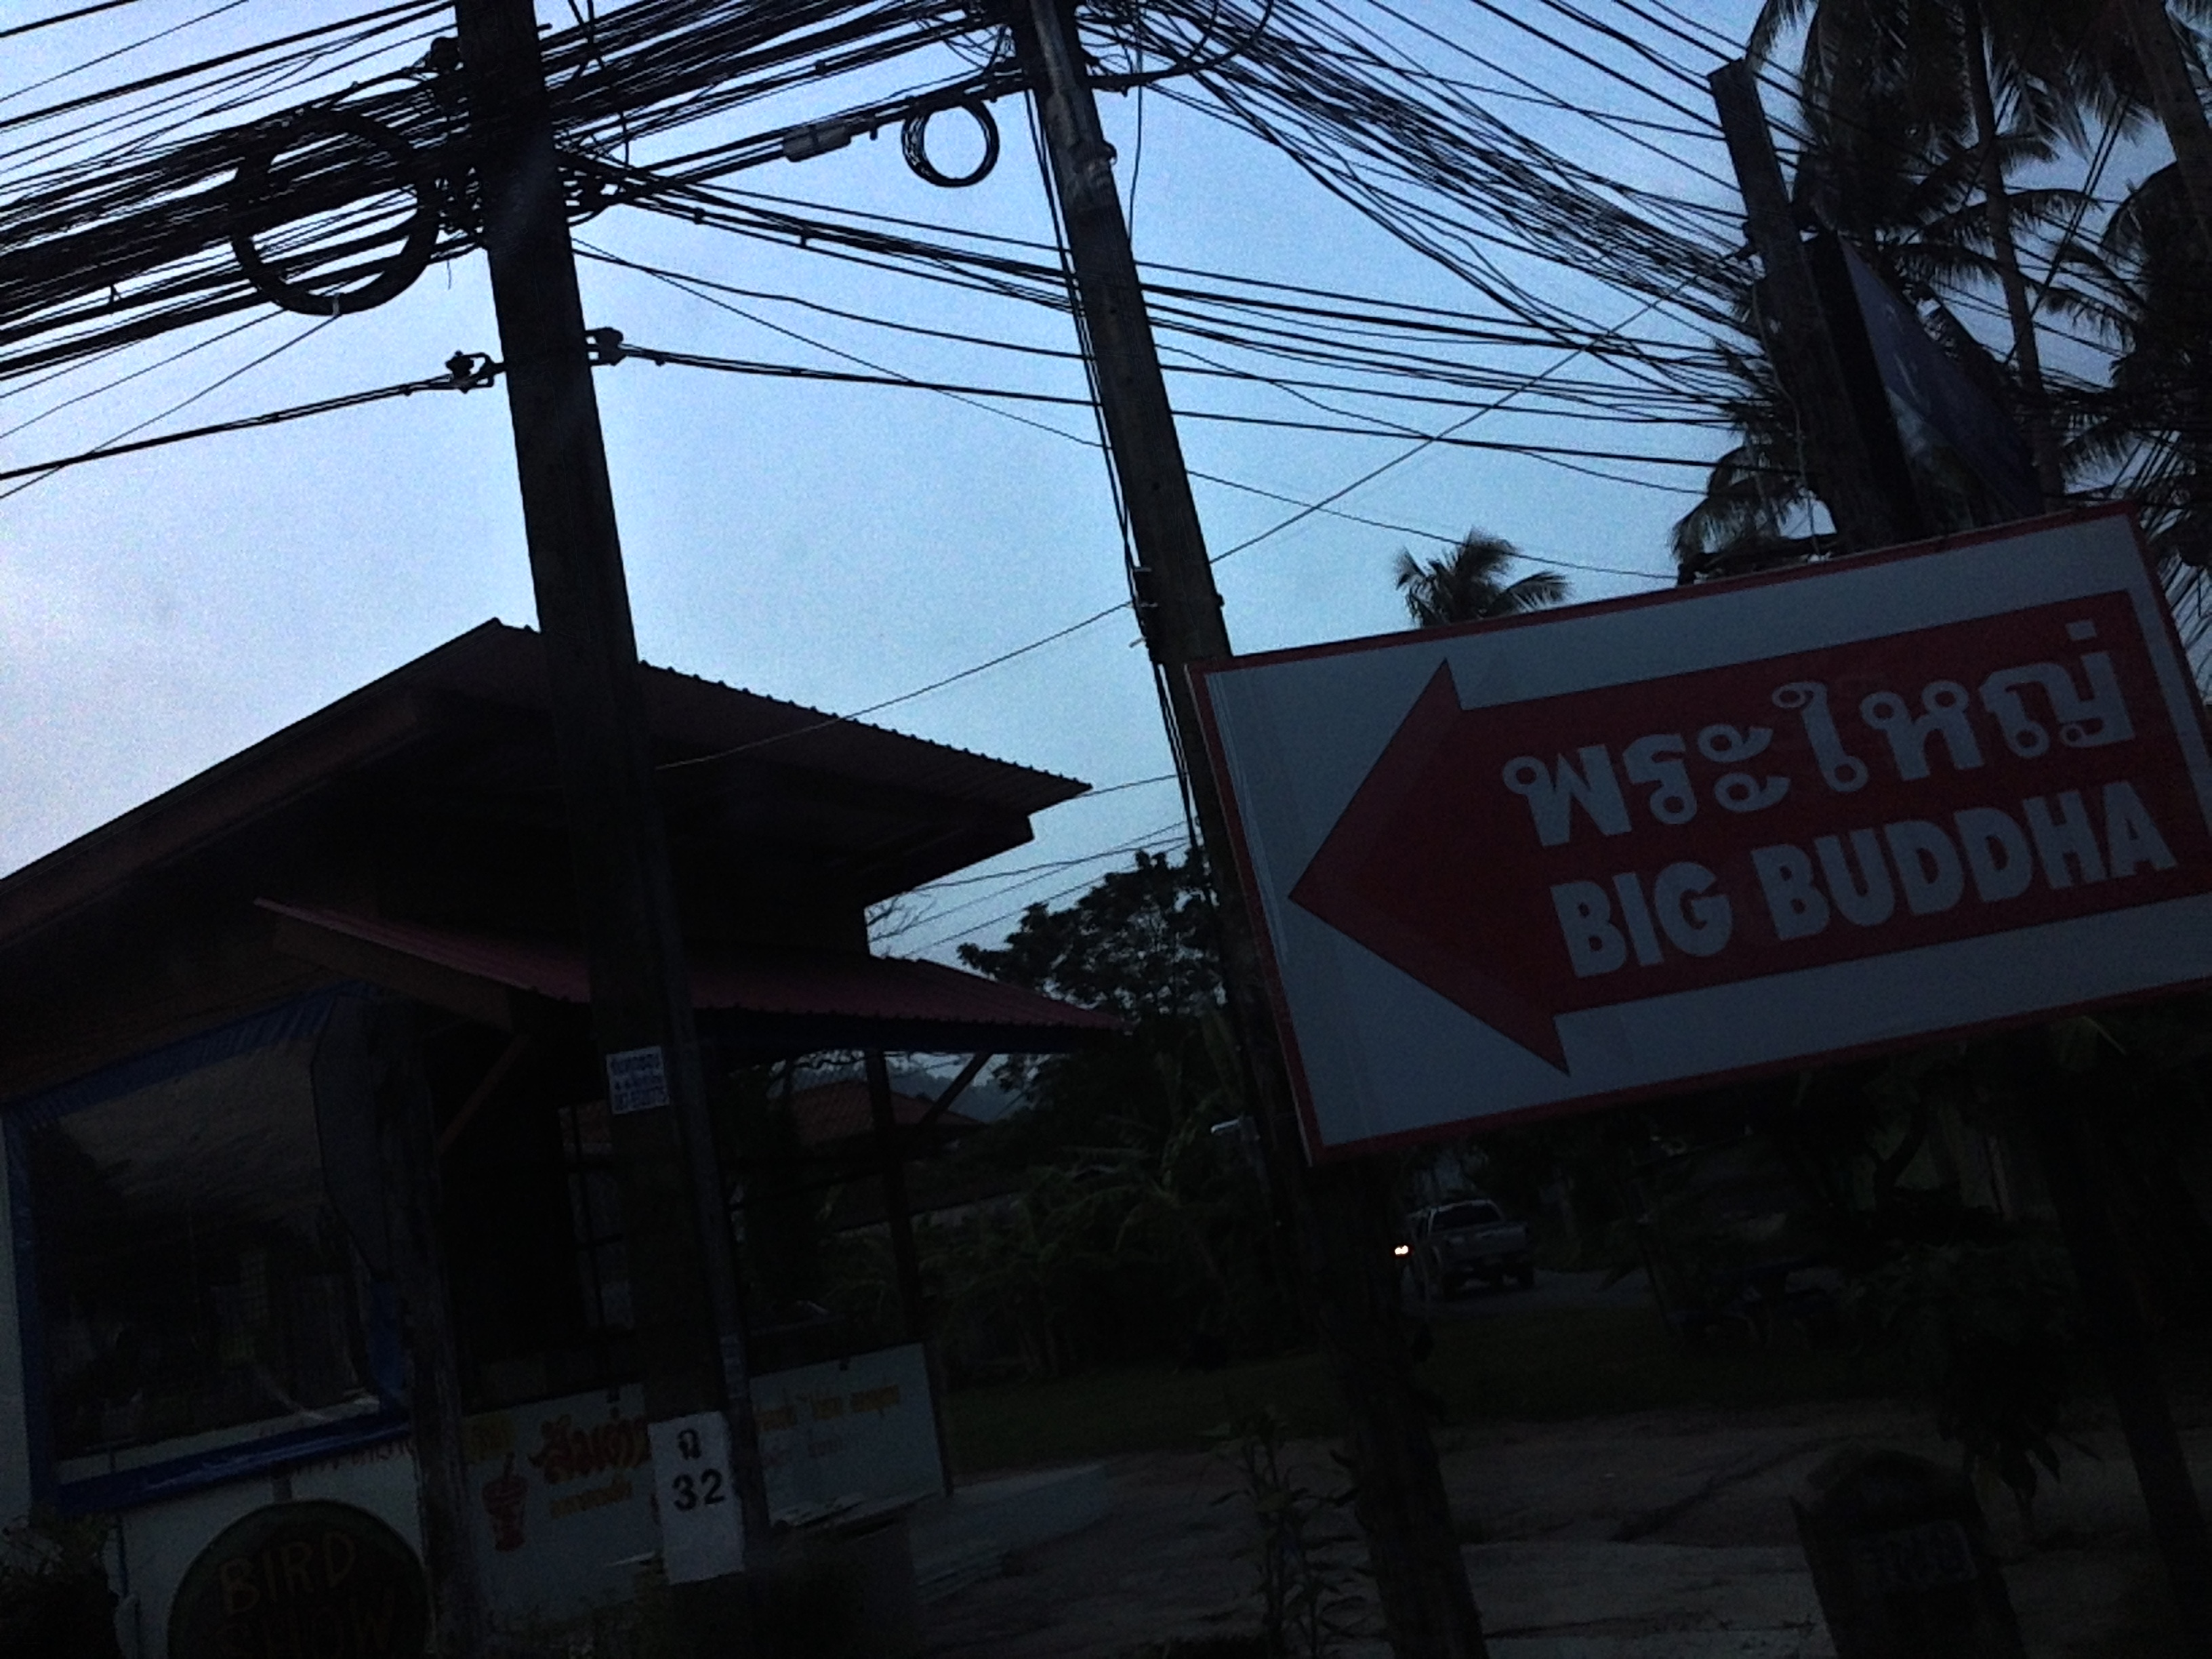 Electric poles with wires, and on the right a white sign with red lettering and a big red arrow pointing to the left. The arrow says Big Buddha.